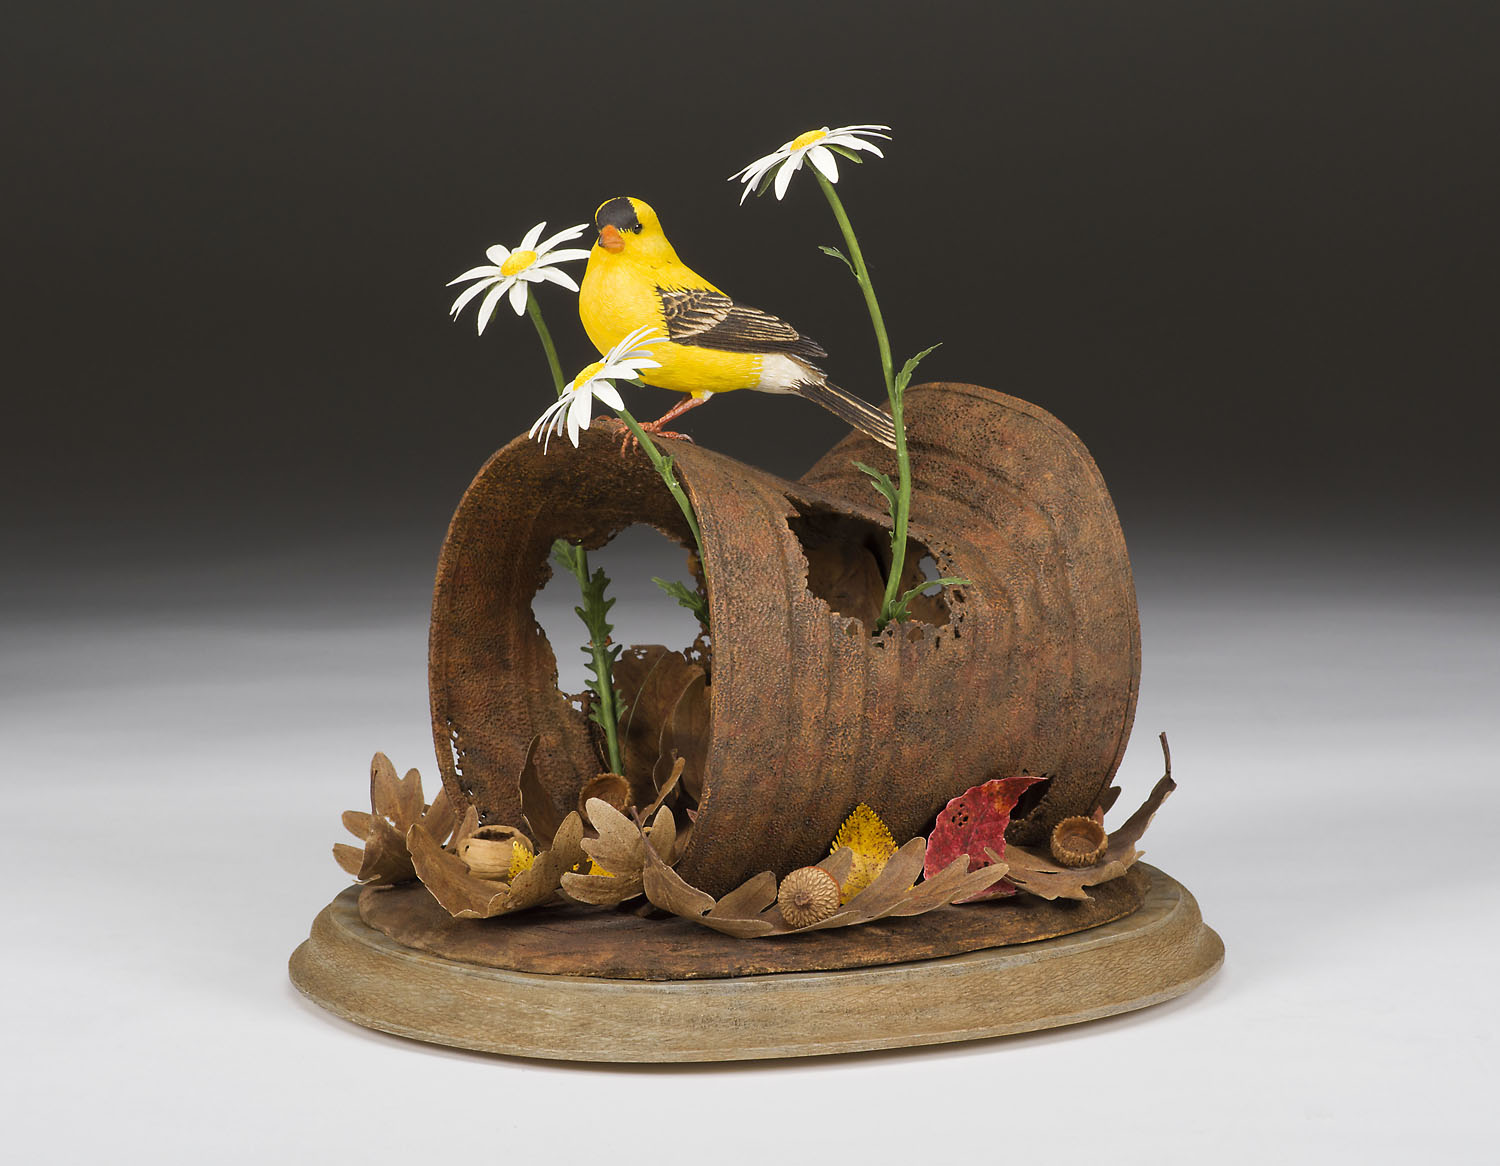 Pete Lupo - Wildlife Artist - Fragile World - Goldfinch, Chipmunk and Rusty Can